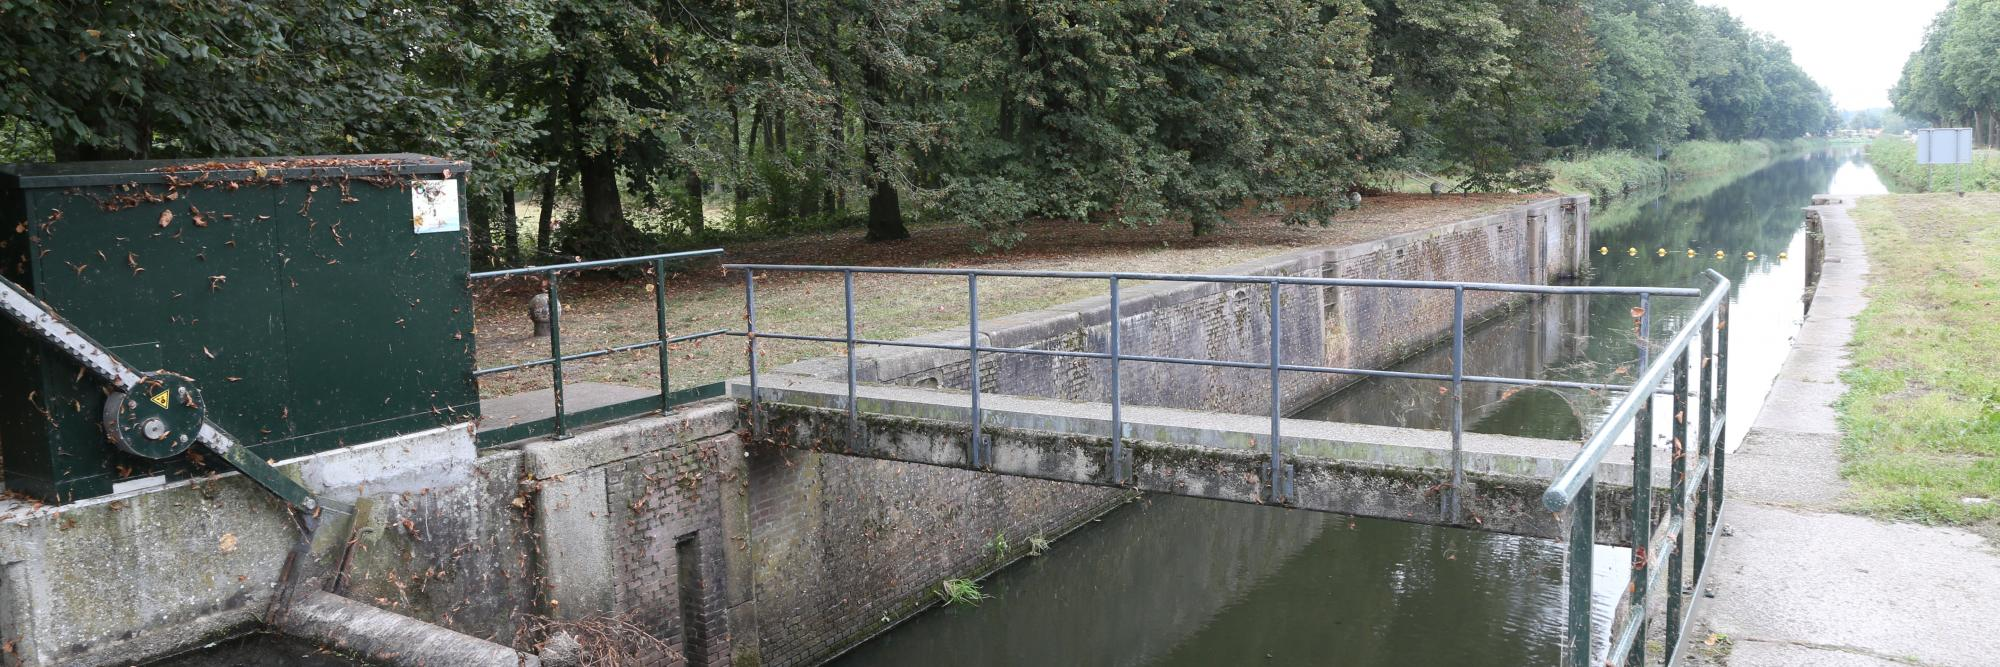 Bonenburger Sluis